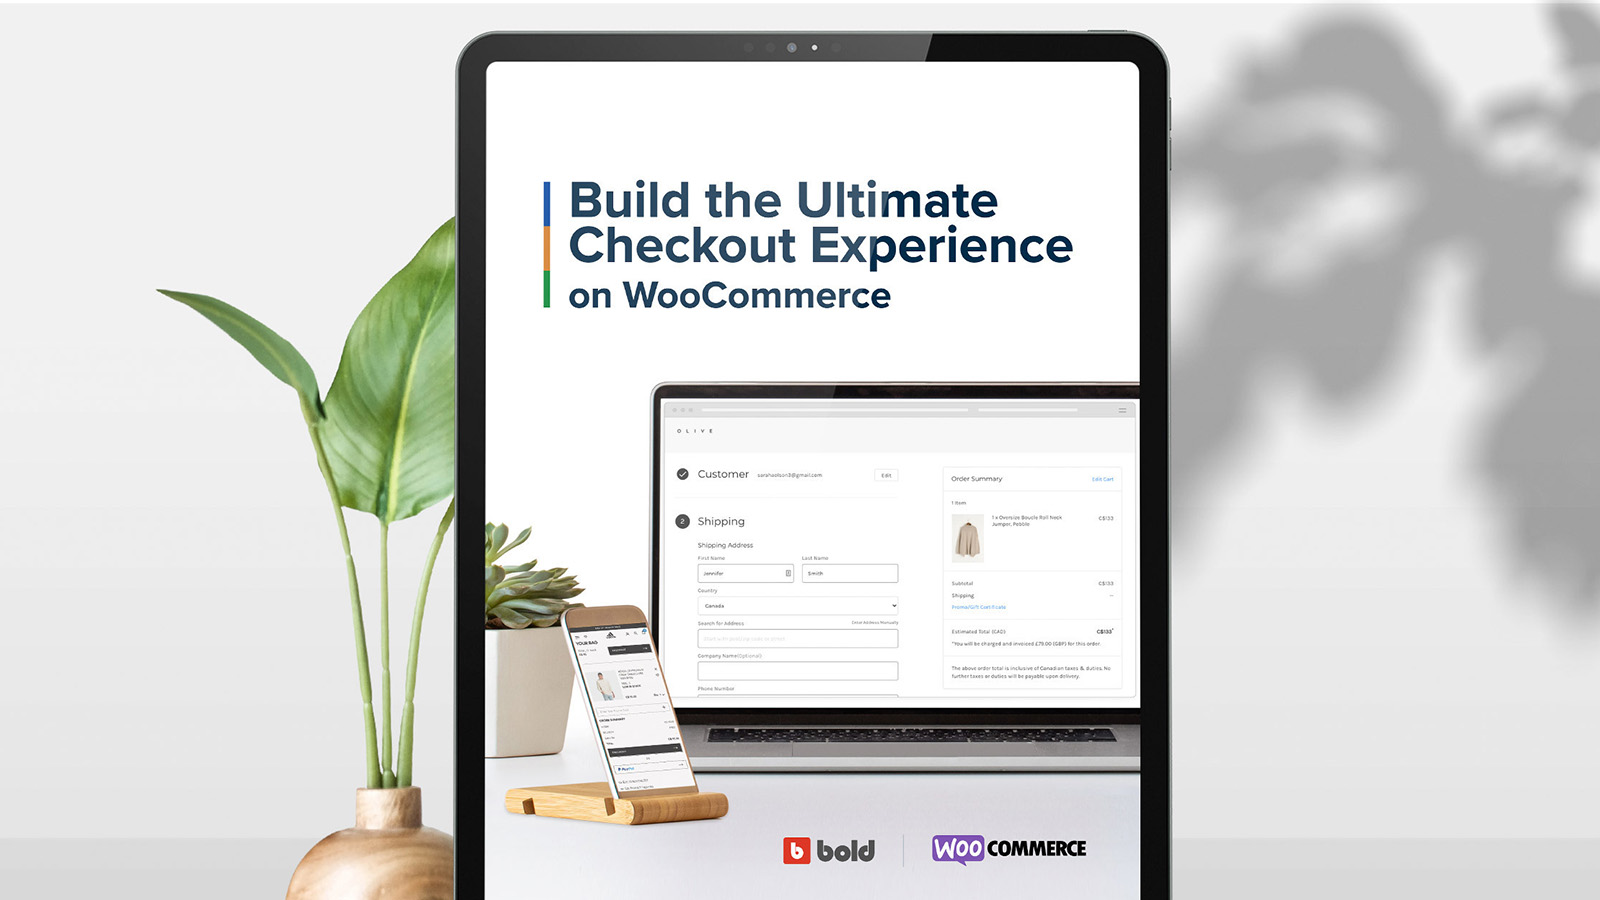 Build The Ultimate Checkout Experience on WooCommerce